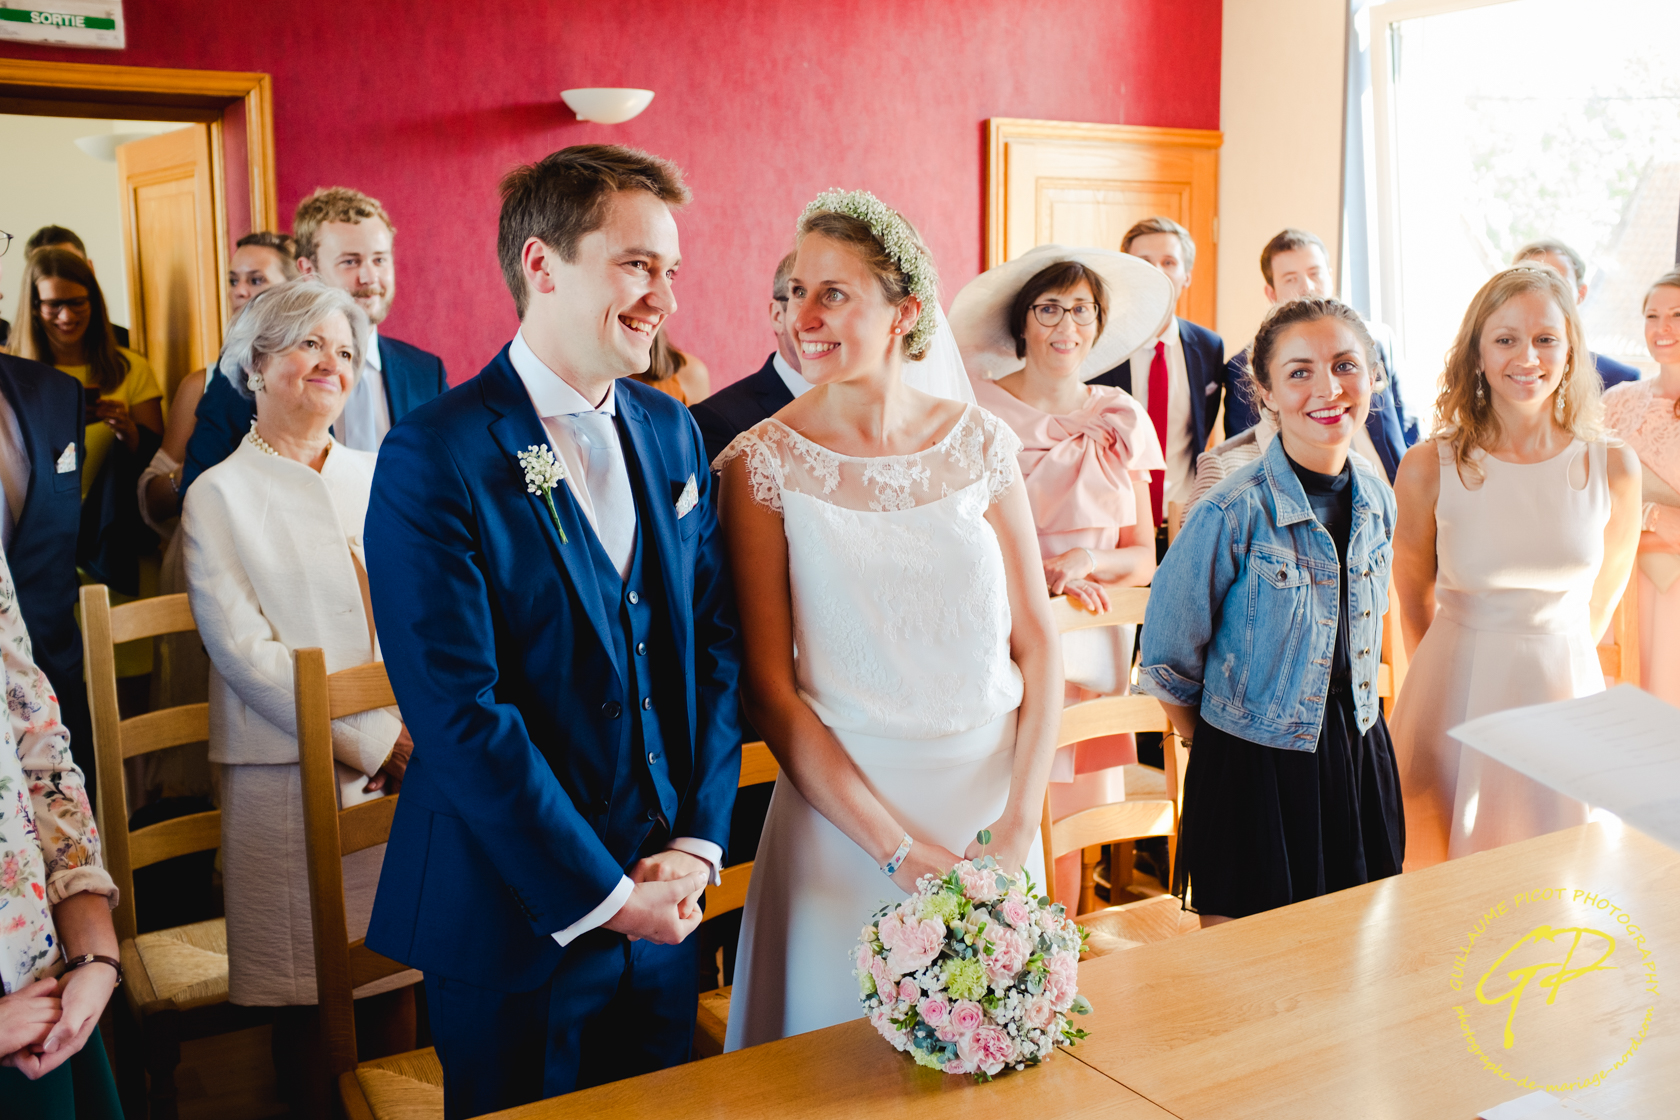 mariage-claire-fontaine-wicres-43-sur-151